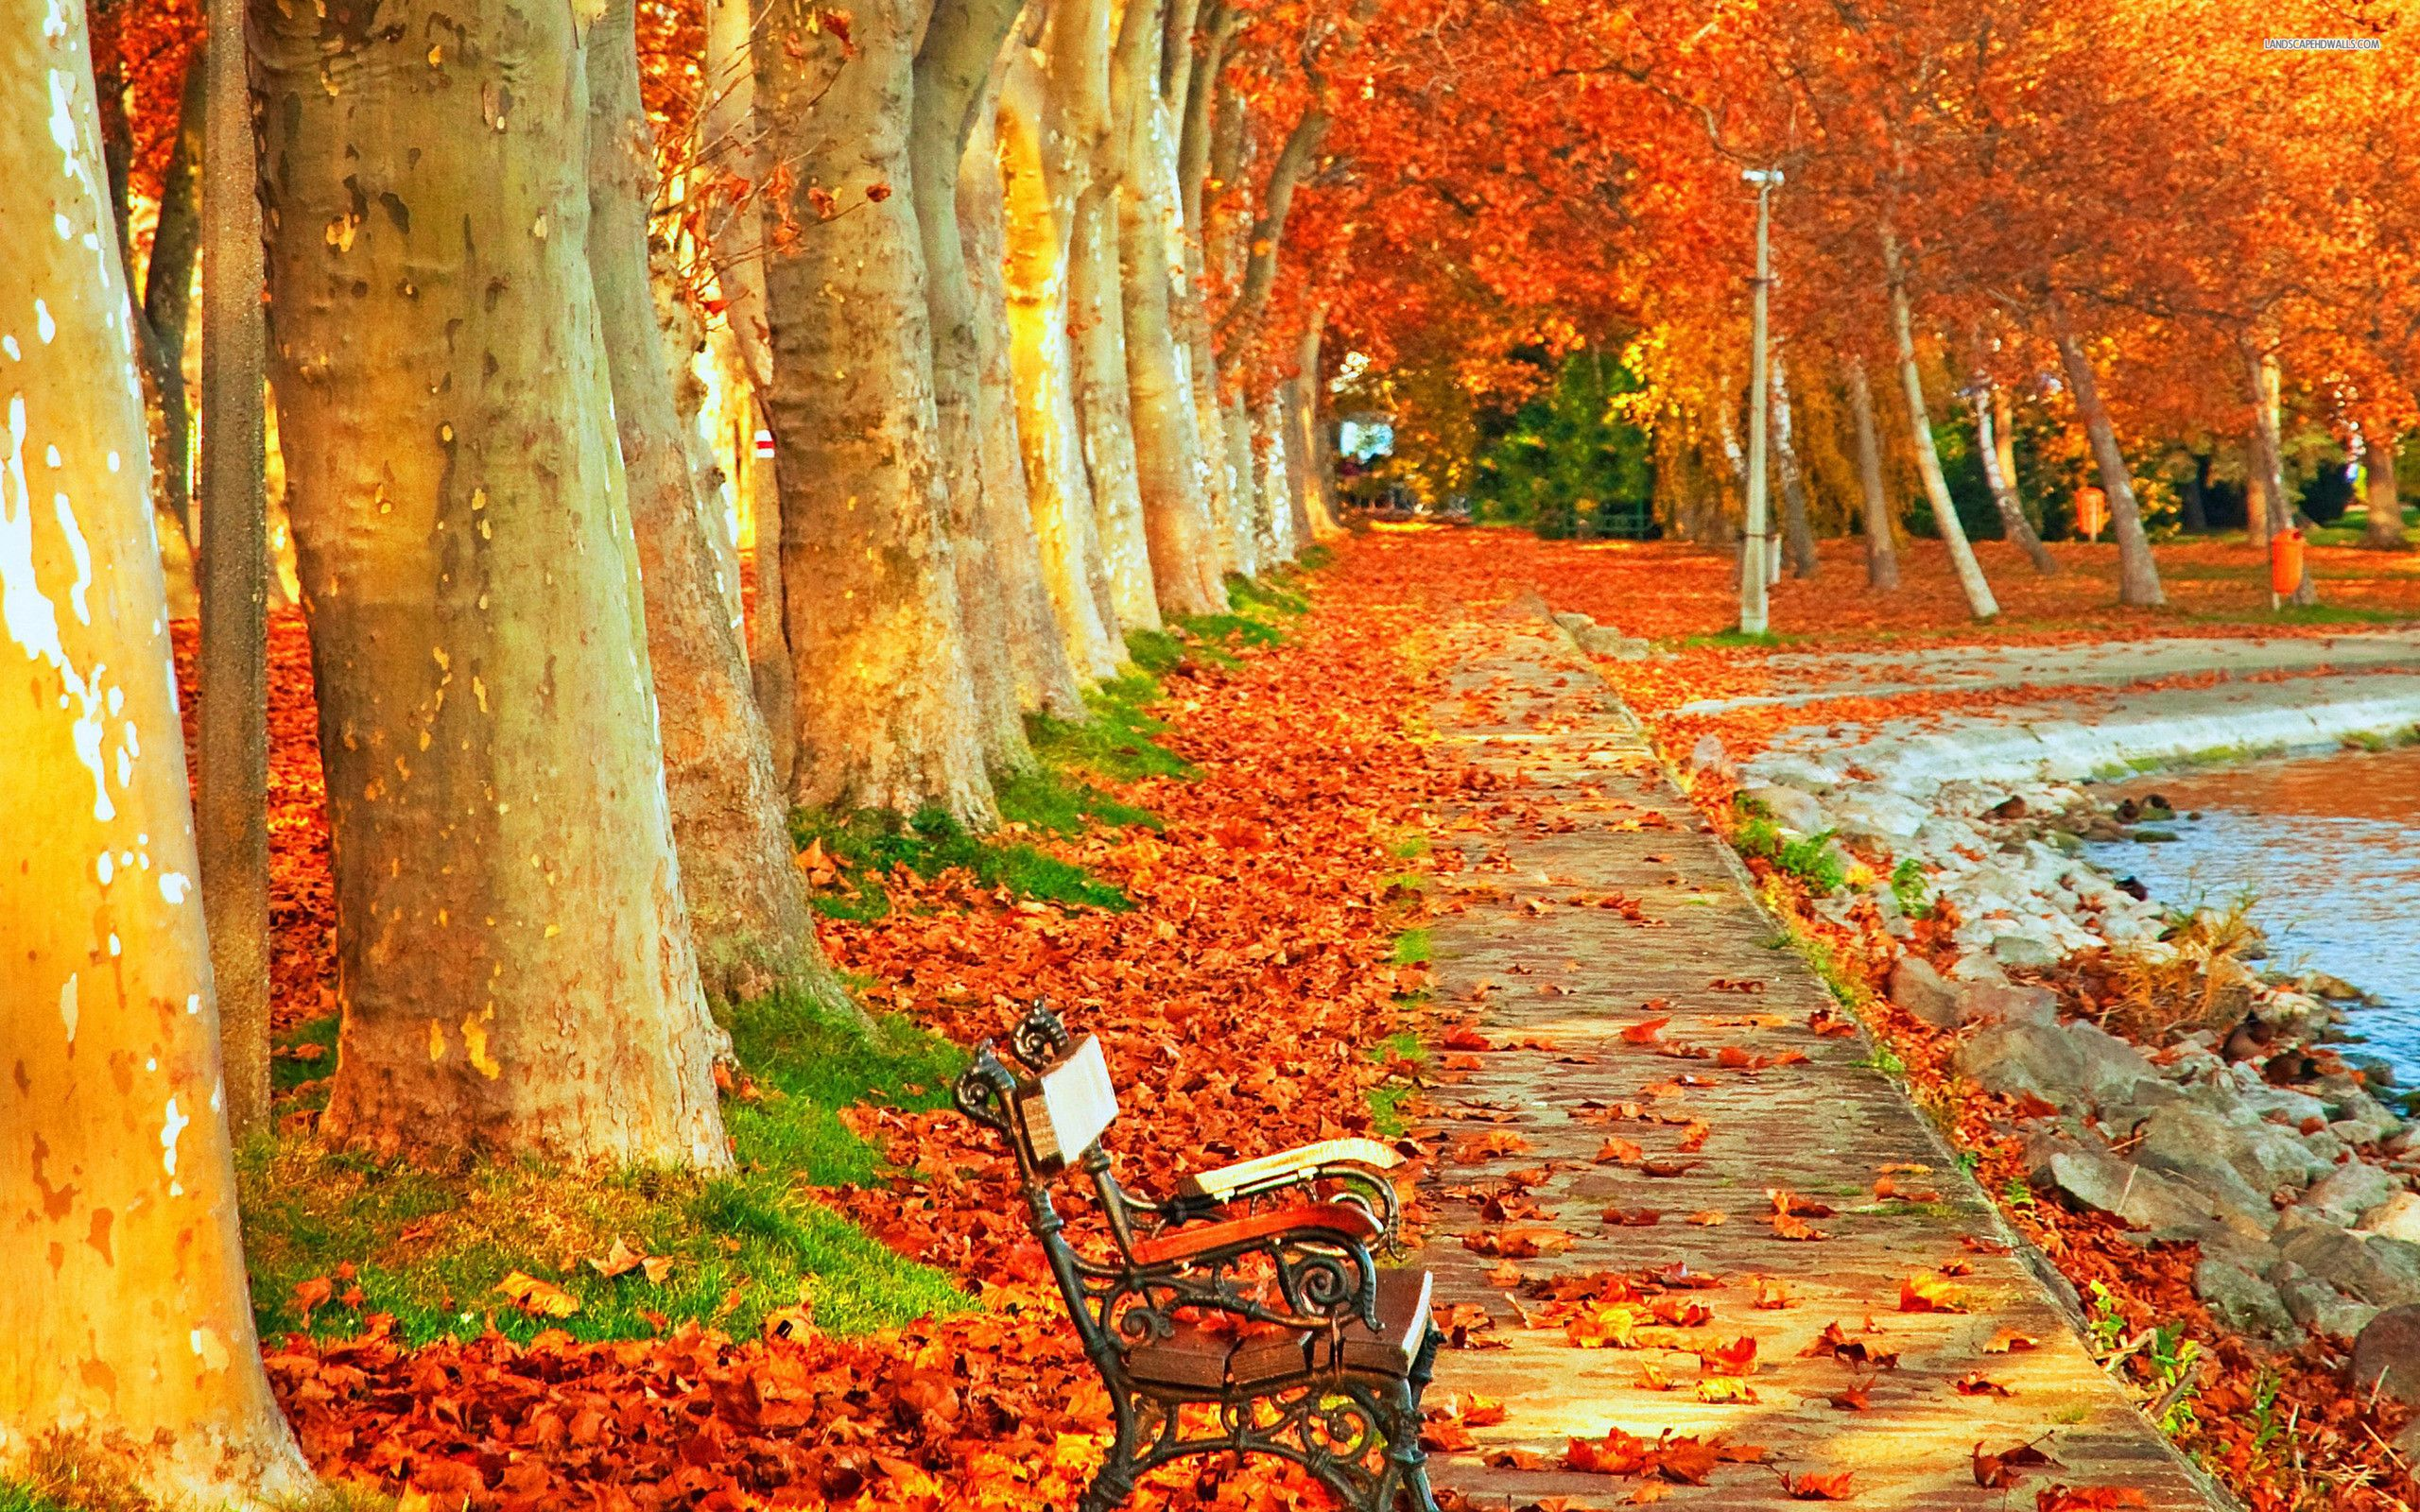 park-autumn-scenery-in-high-resolution 2,560×1,600 pixels